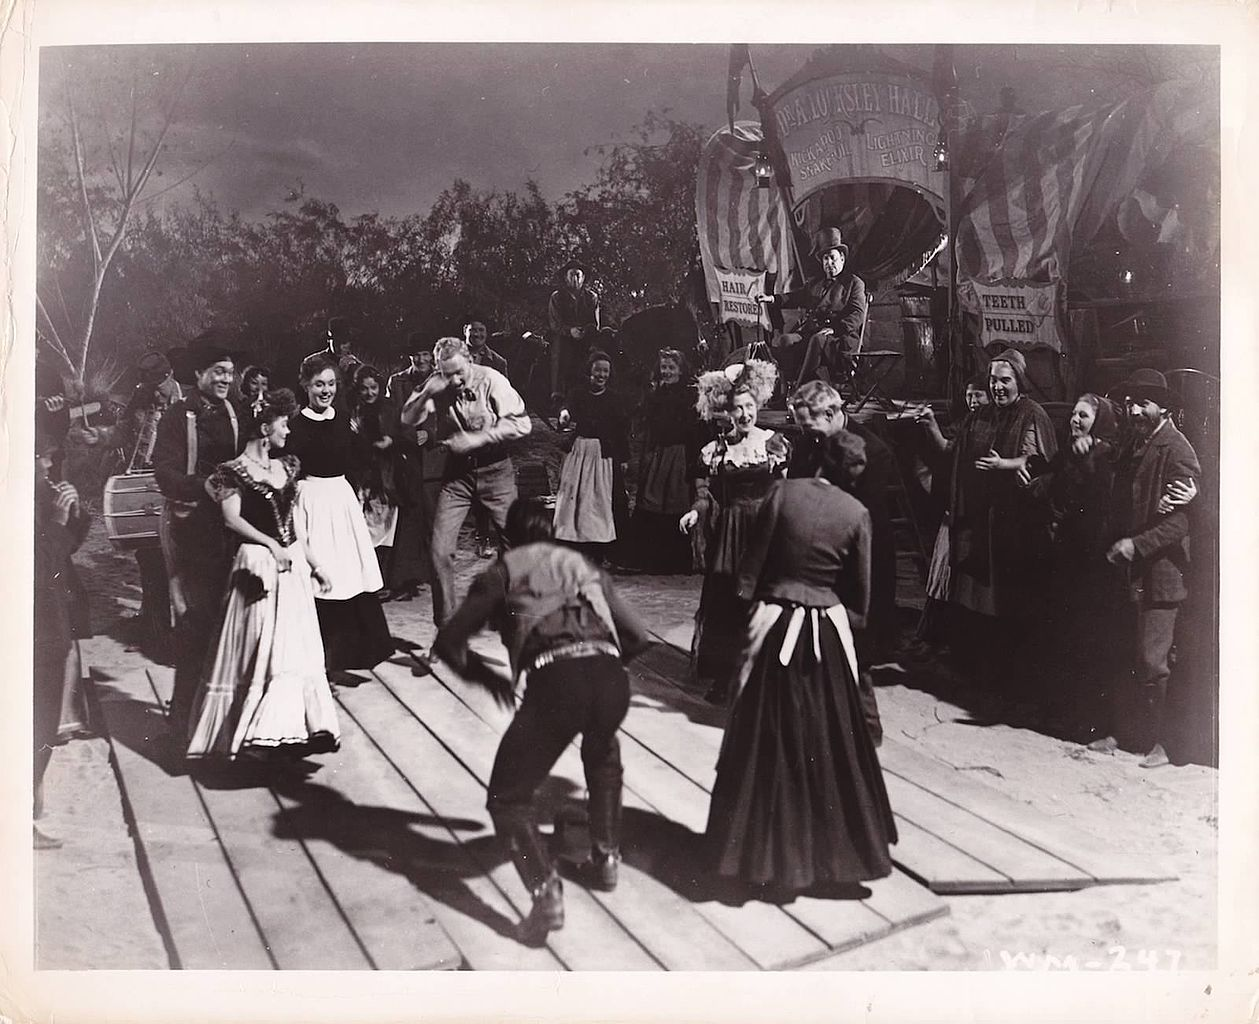 "Square Dance: Szene aus dem Film ""Wagon Master"" - By Copyright RKO Radio Pictures, Inc.; photographer unknown. [Public domain], via Wikimedia Commons"